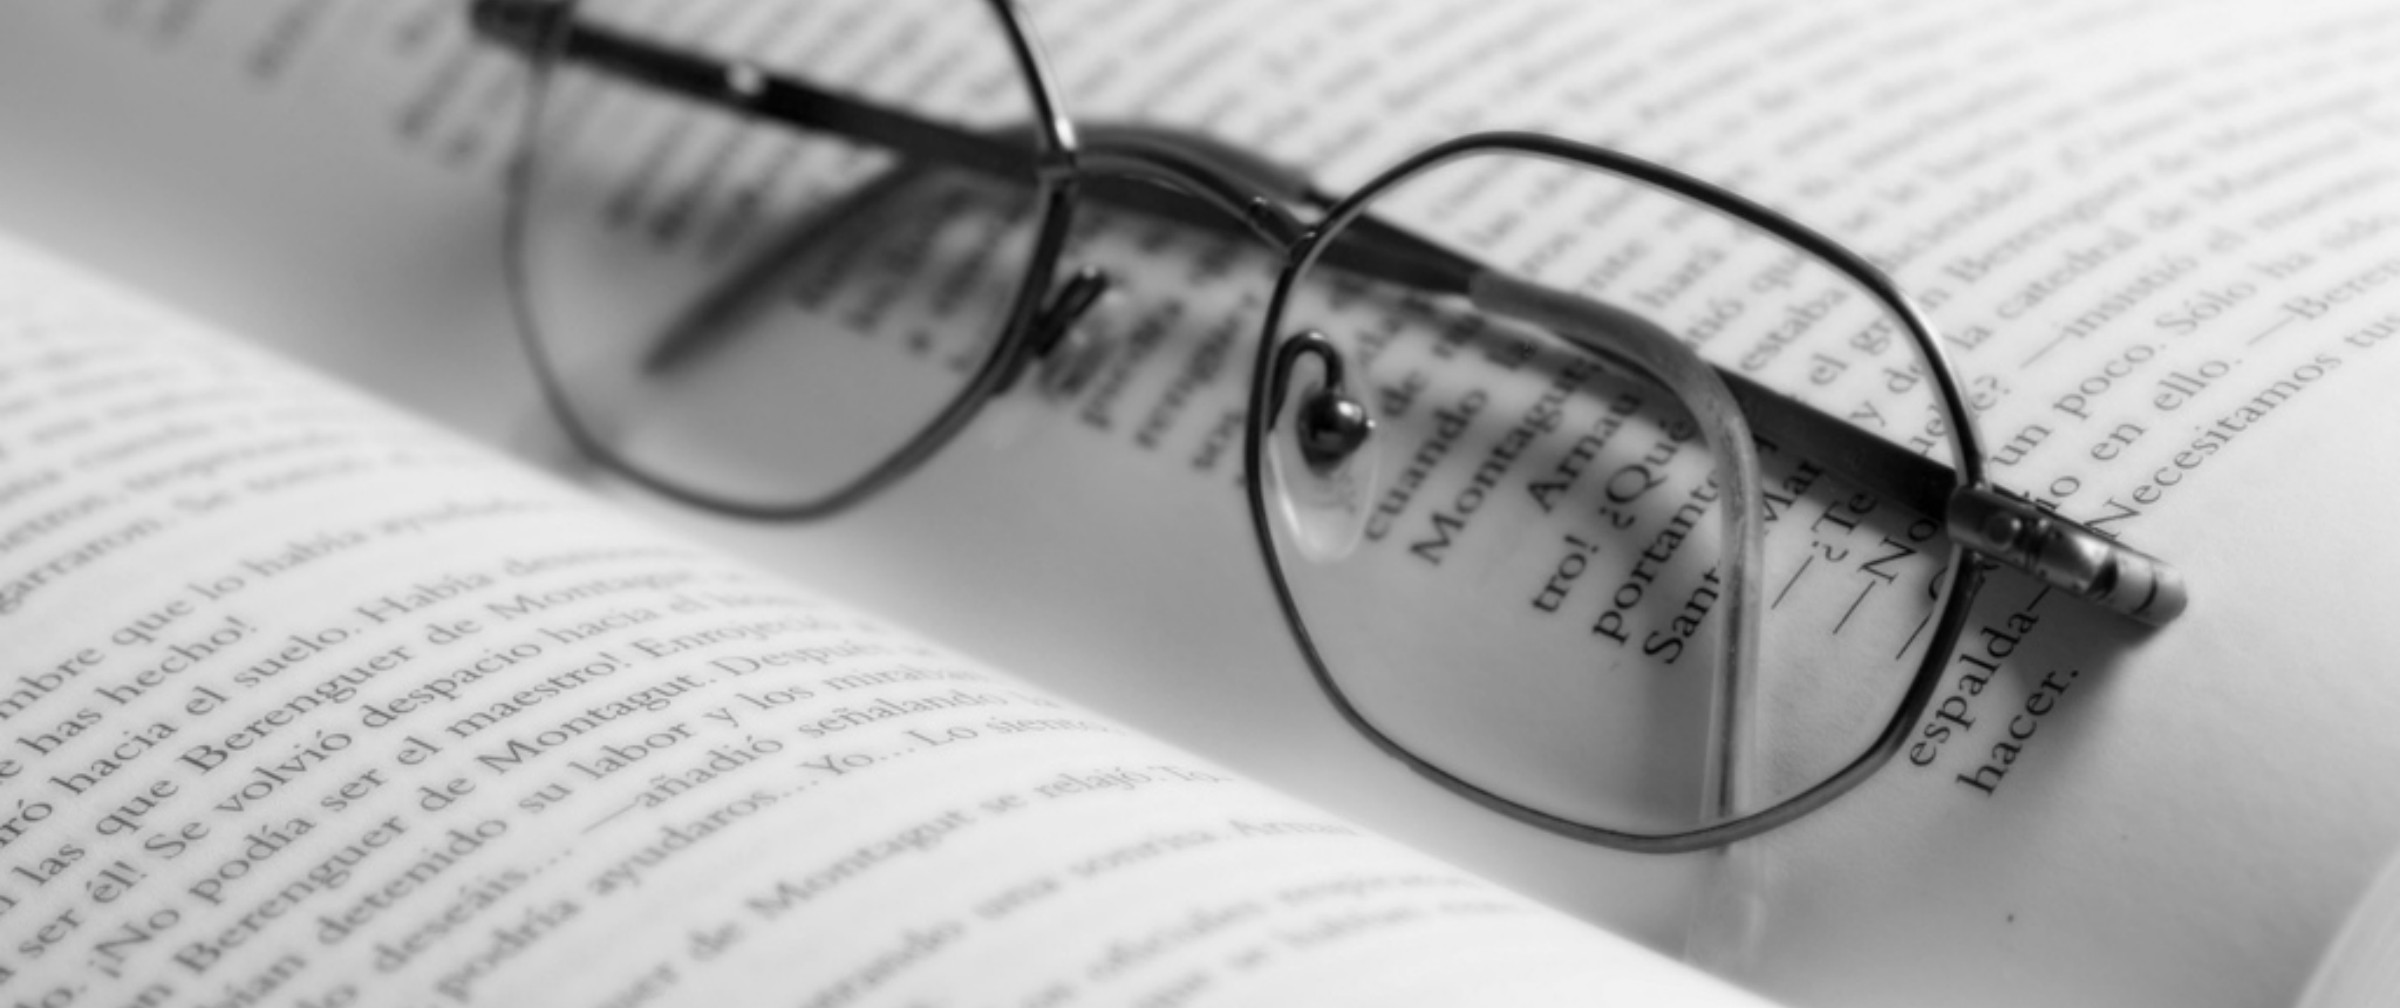 Most of the time, you learn by doing. Sometimes, you learn by reading.